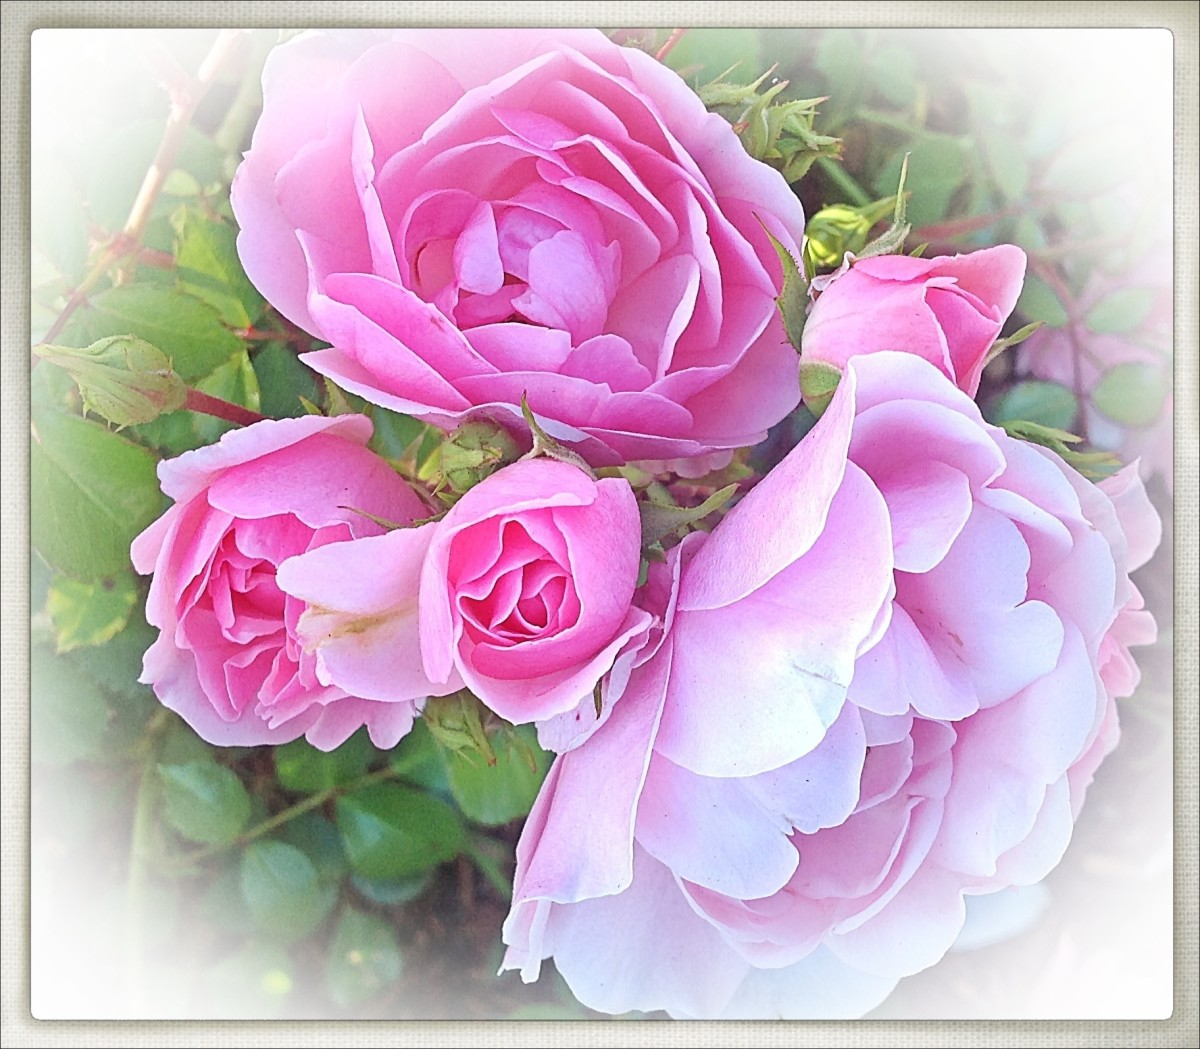 Roses: Flower Facts, Photos, and Symbolic Meanings